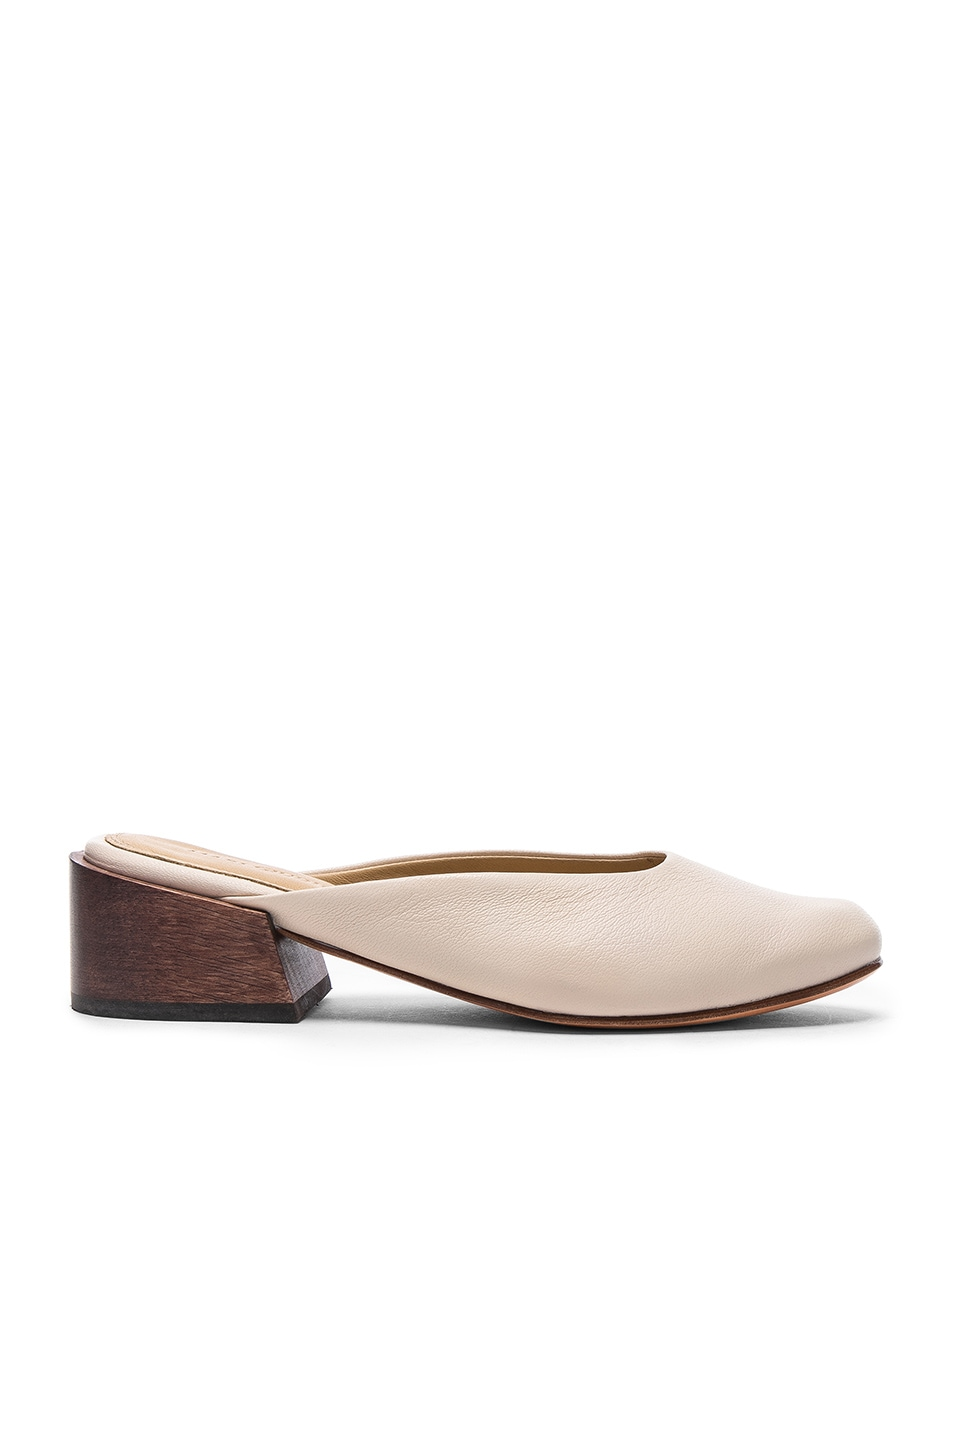 Image 1 of MARI GIUDICELLI Leather Leblon Mules in Stardust Calf